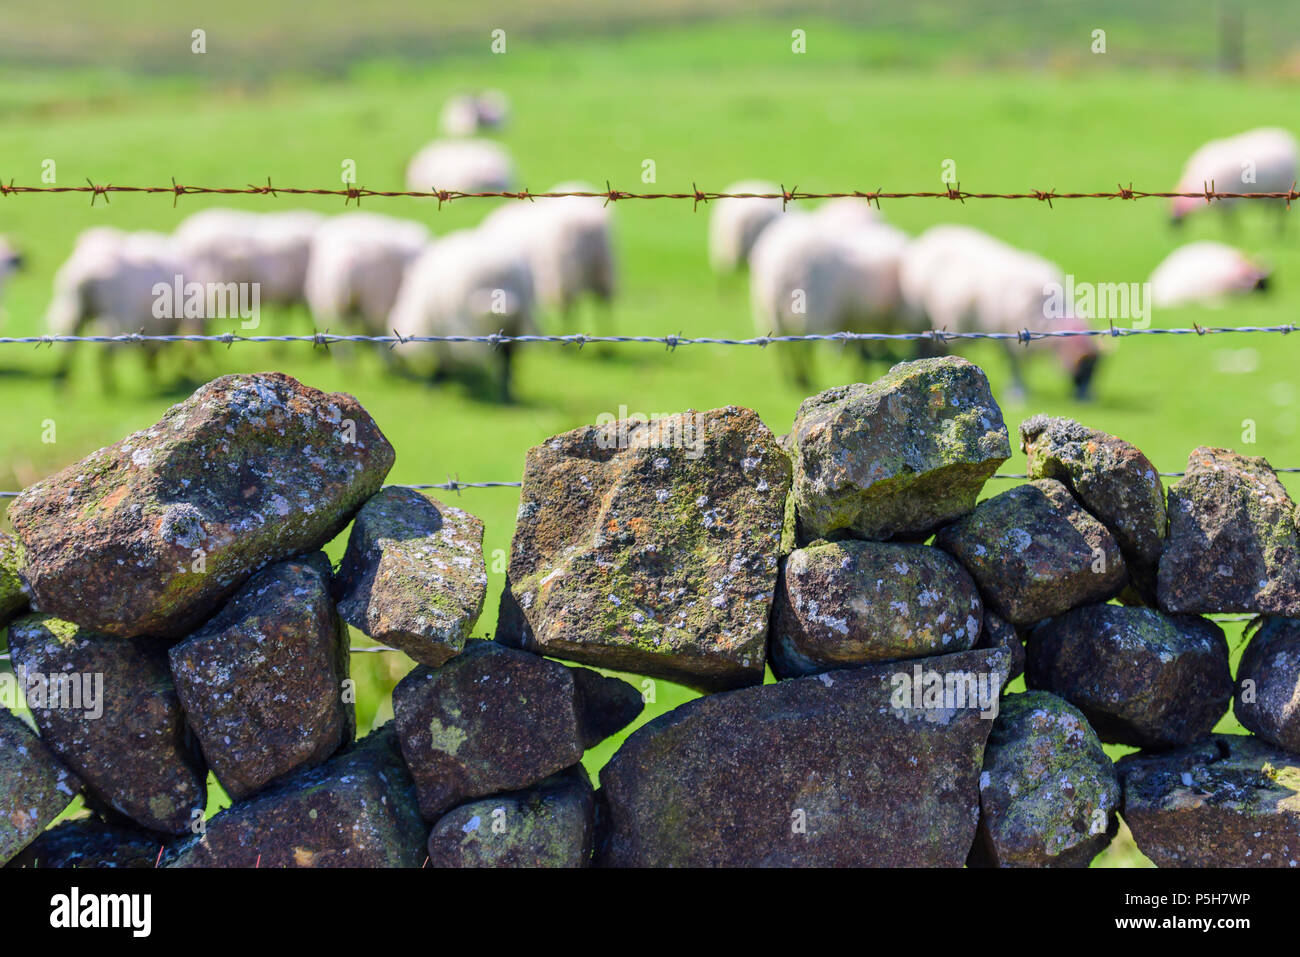 Sheep in a field behind barbed wire and a dry stone wall, County Antrim, Northern Ireland. - Stock Image